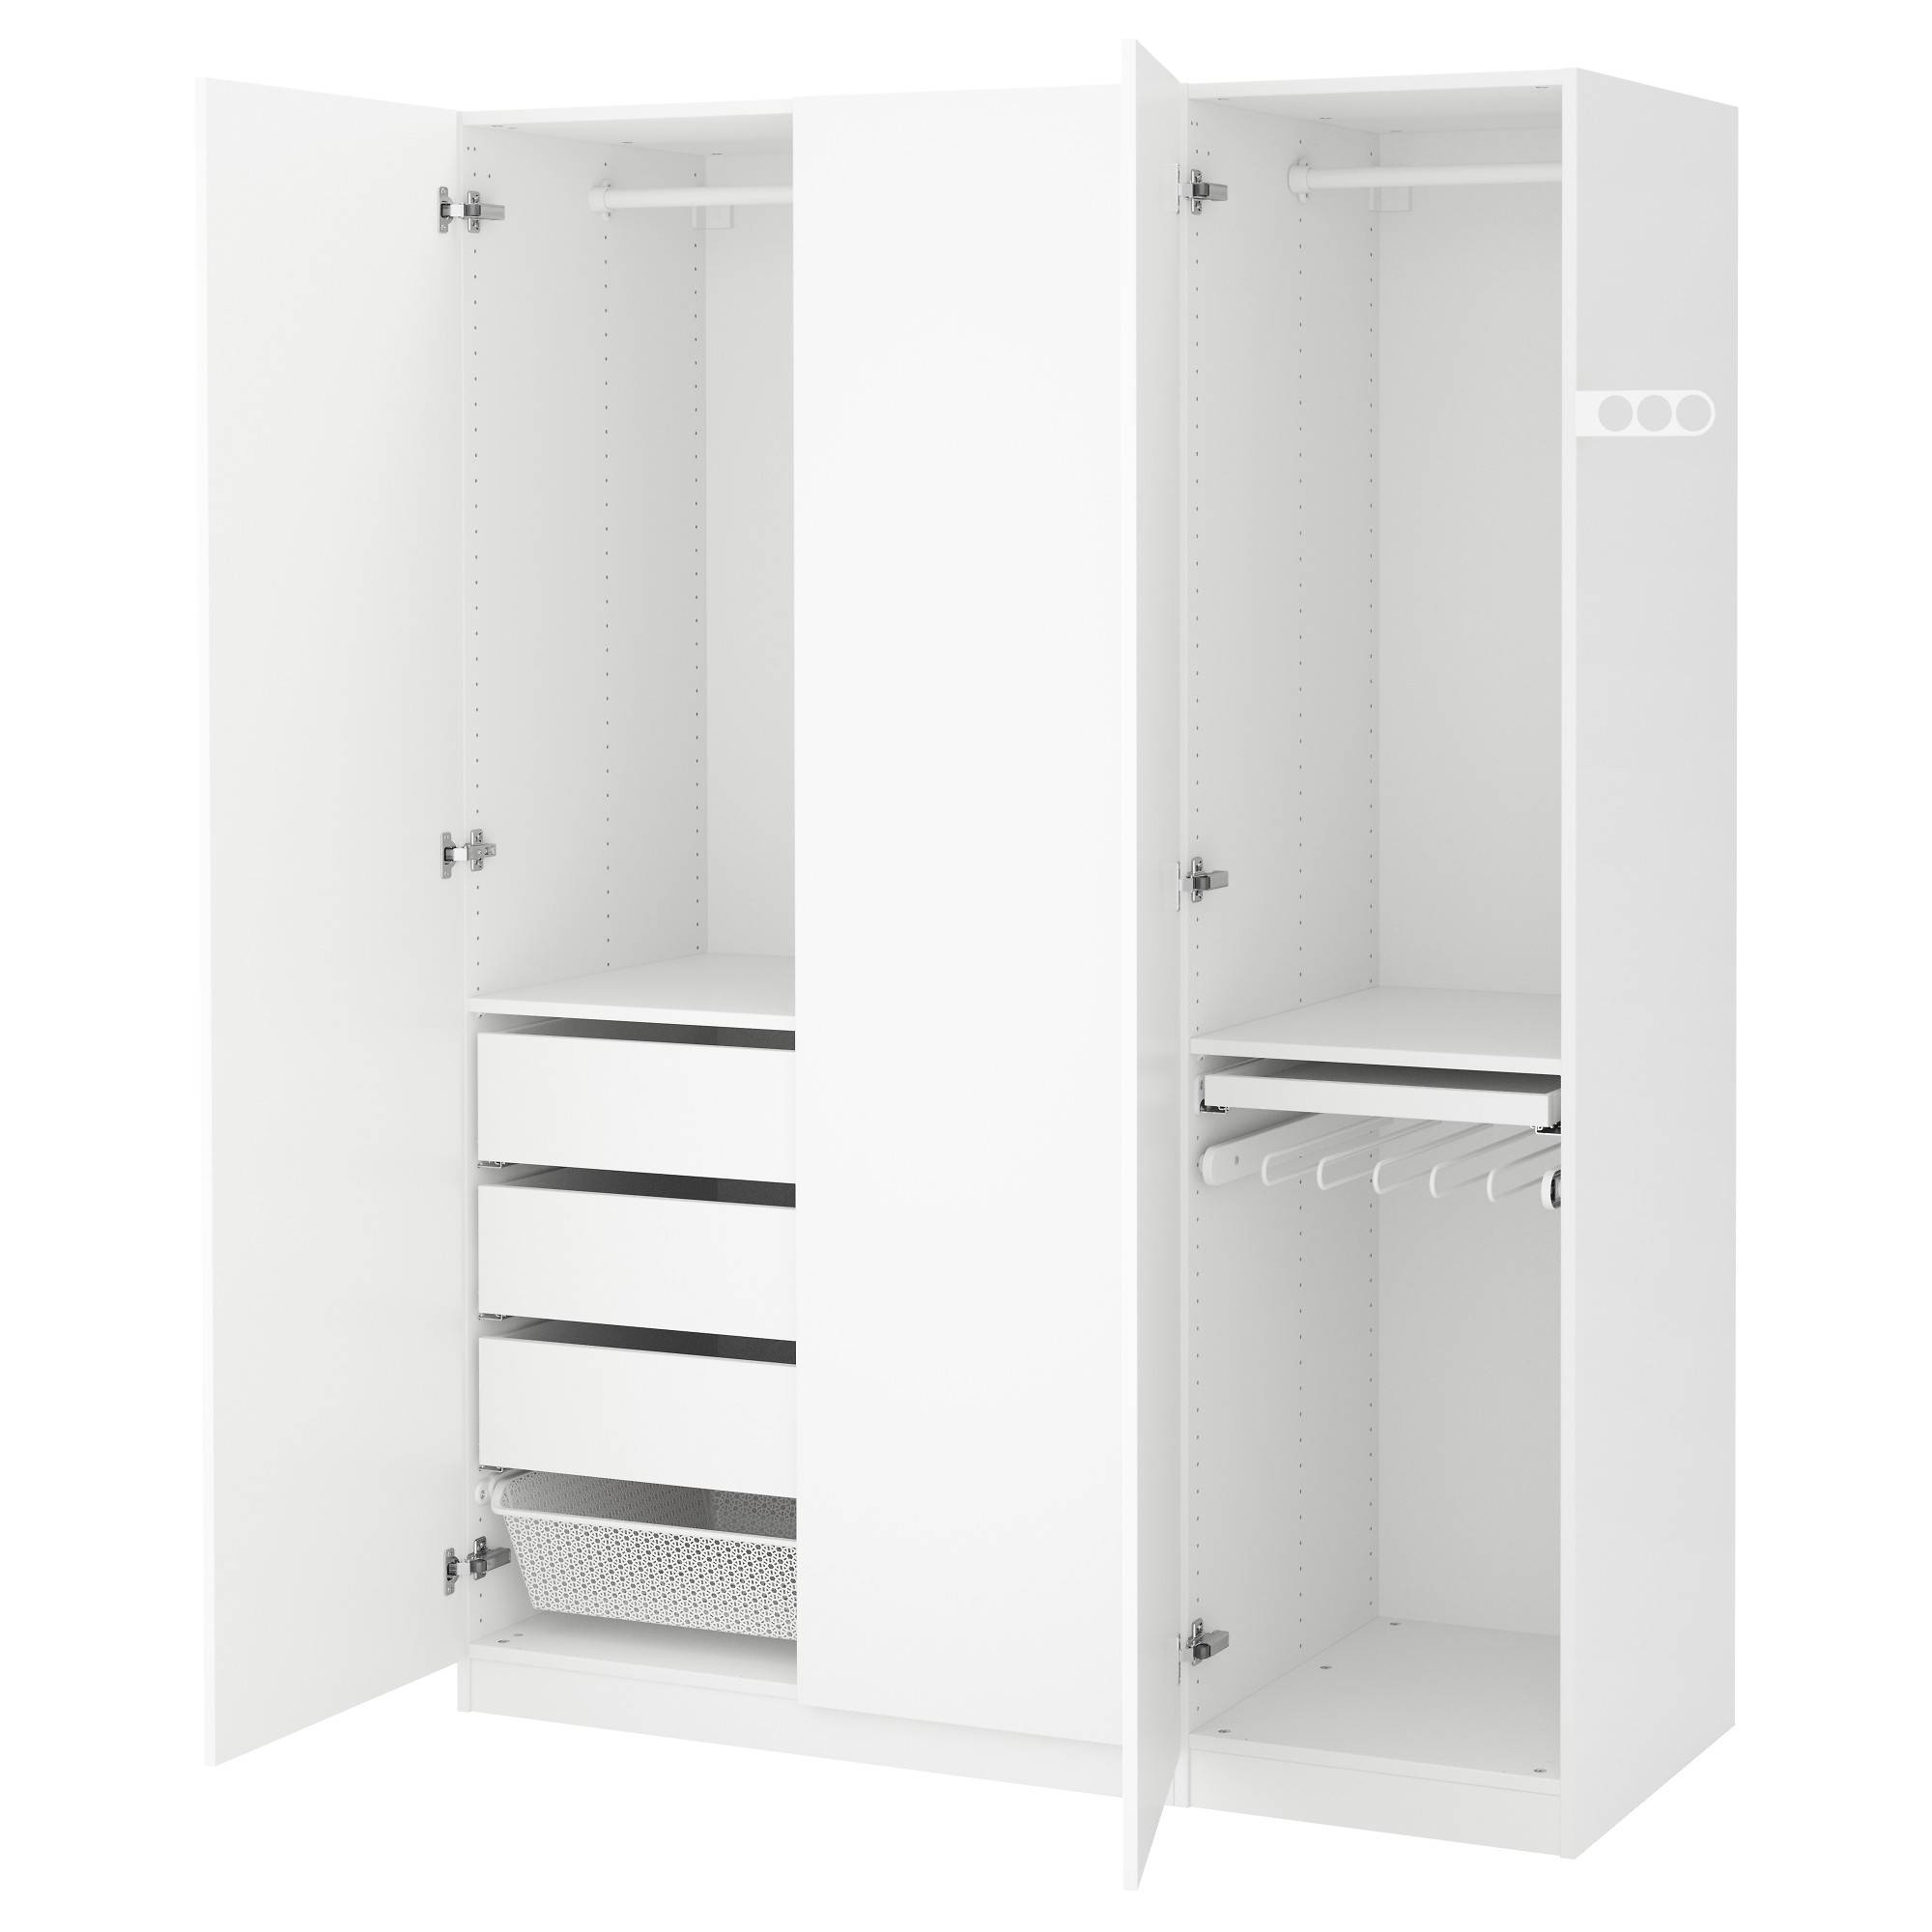 Wardrobes | Ikea intended for Single White Wardrobes With Mirror (Image 12 of 15)